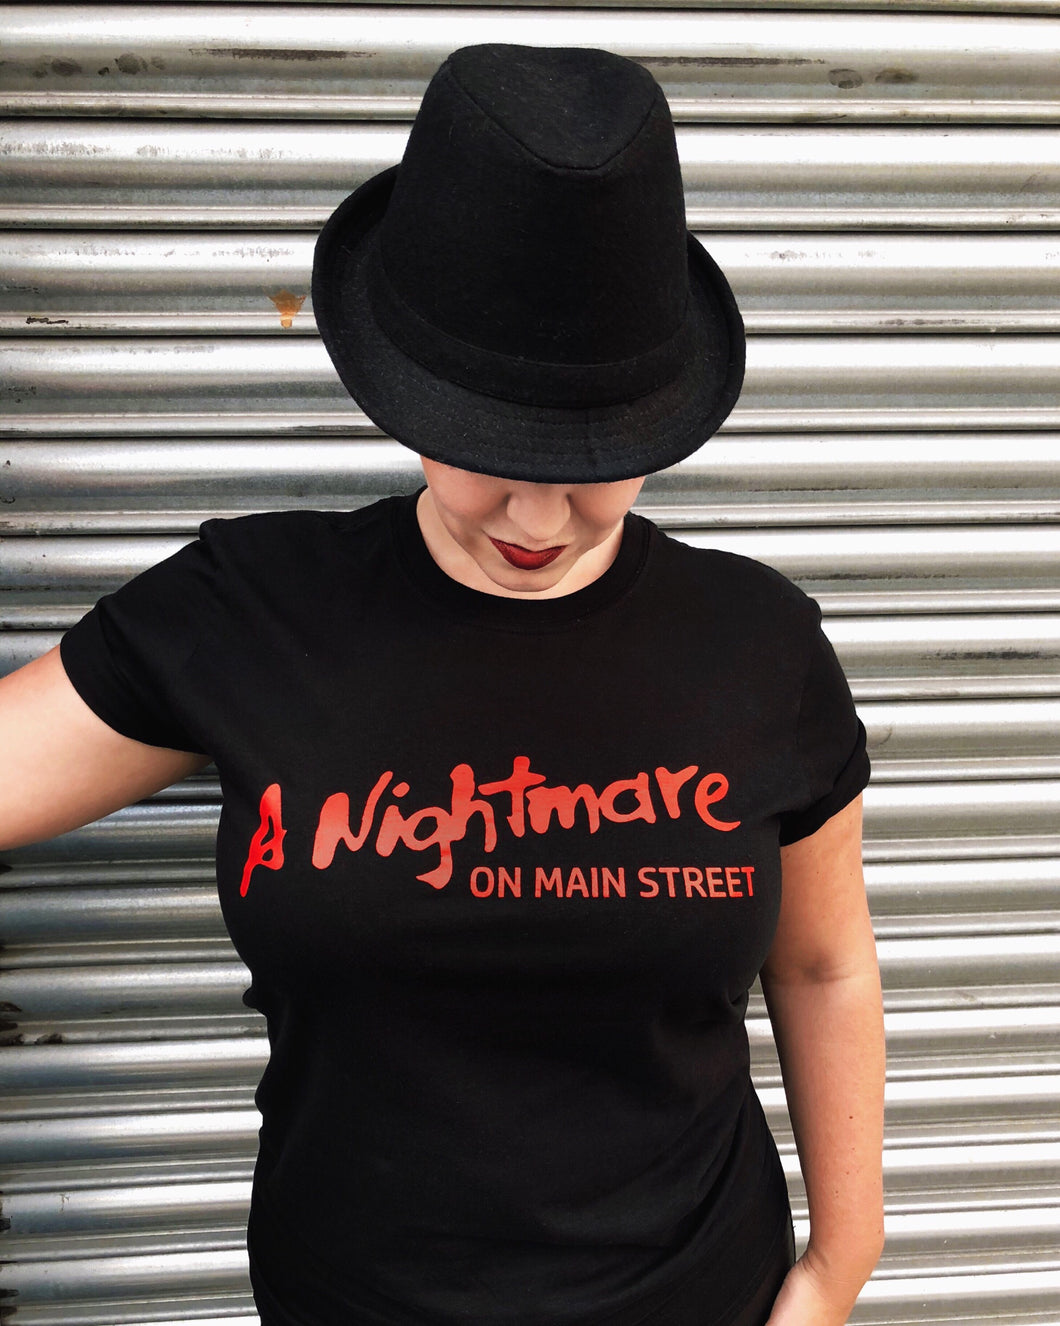 A Nightmare on Main Street red logo on bkack tshirt